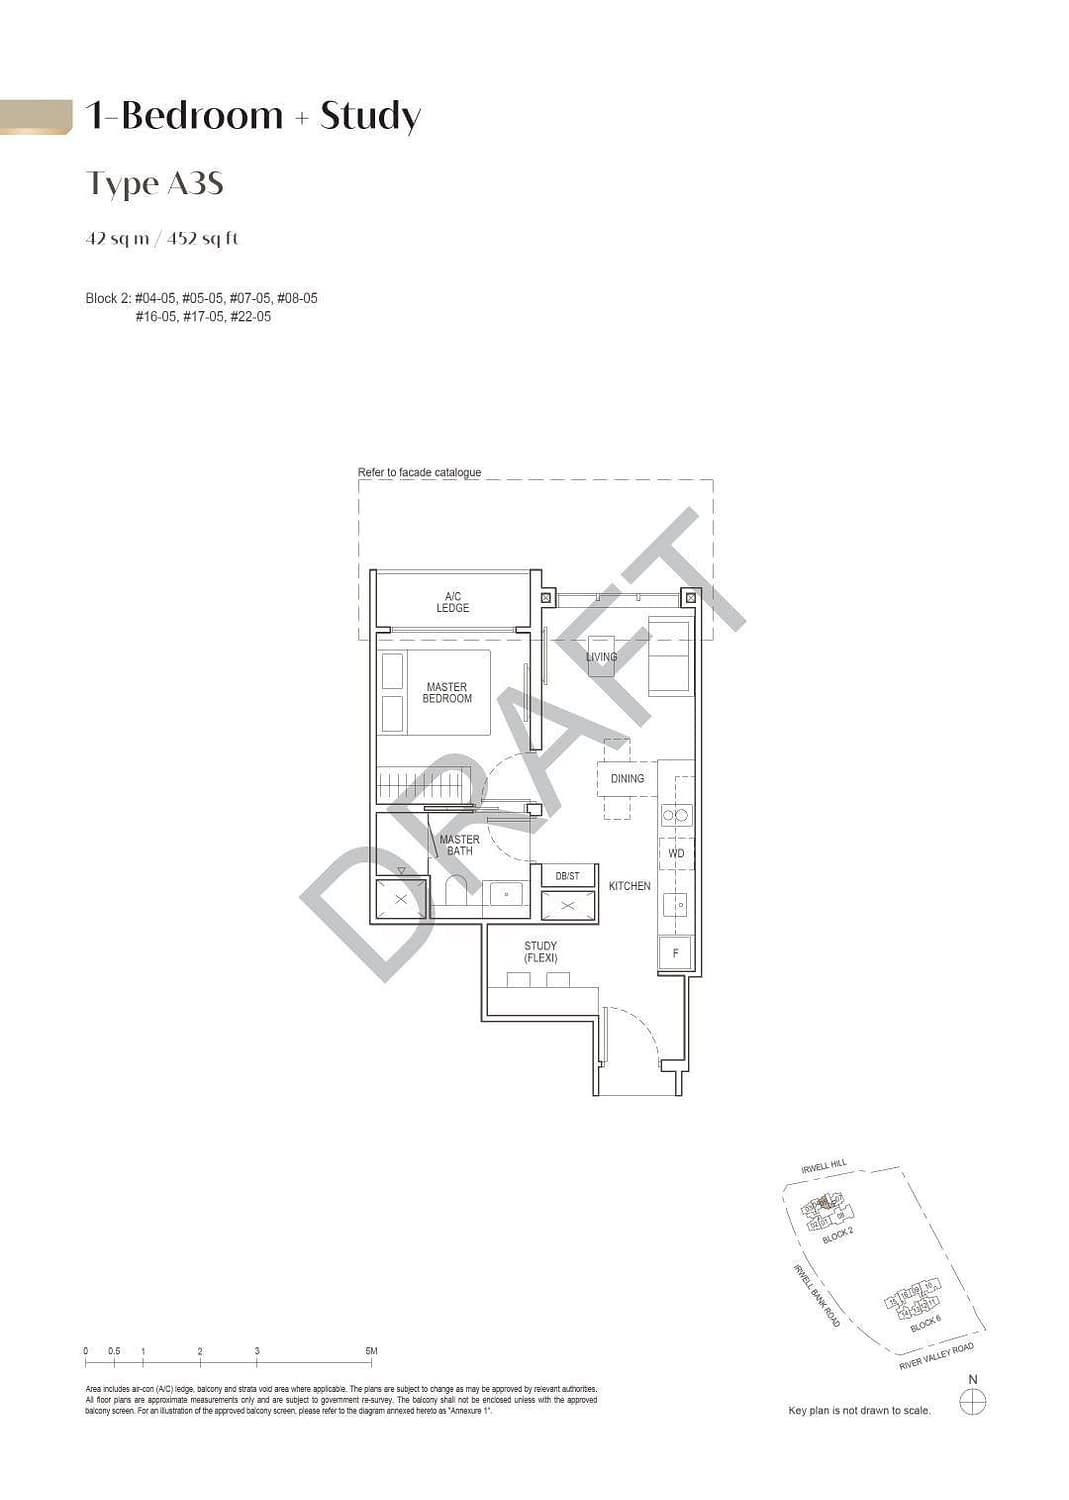 Irwell Hill Residences Irwell Hill Residences floorplan type A3S